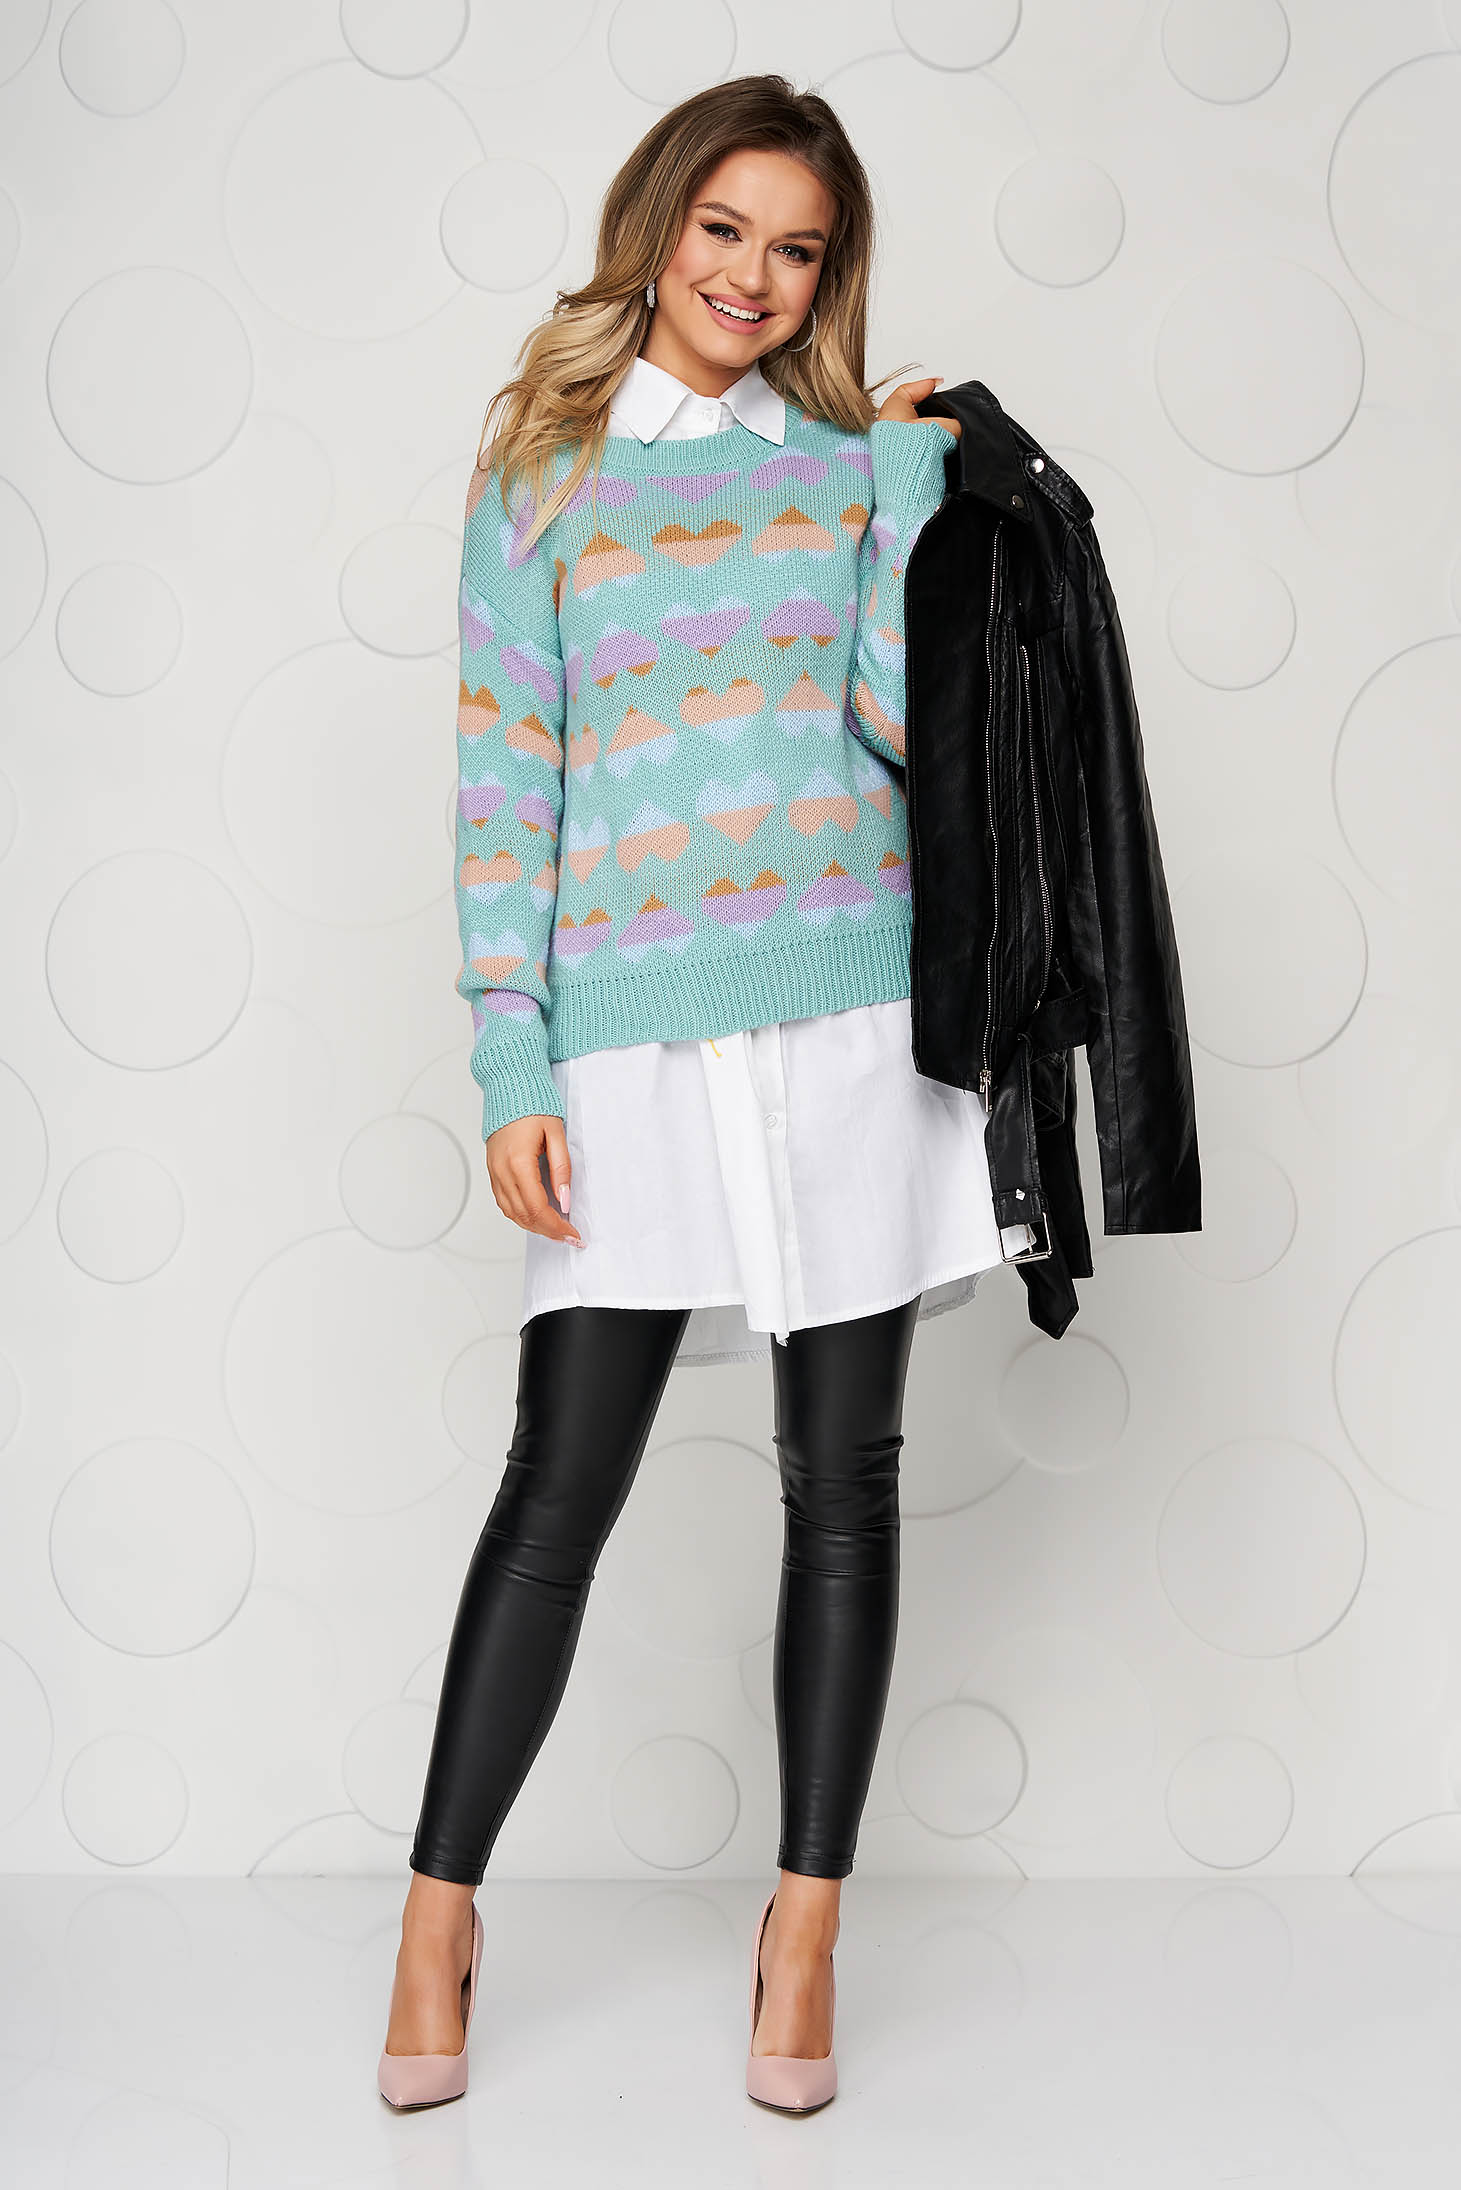 Turquoise casual knitted women`s blouse loose fit with graphic details